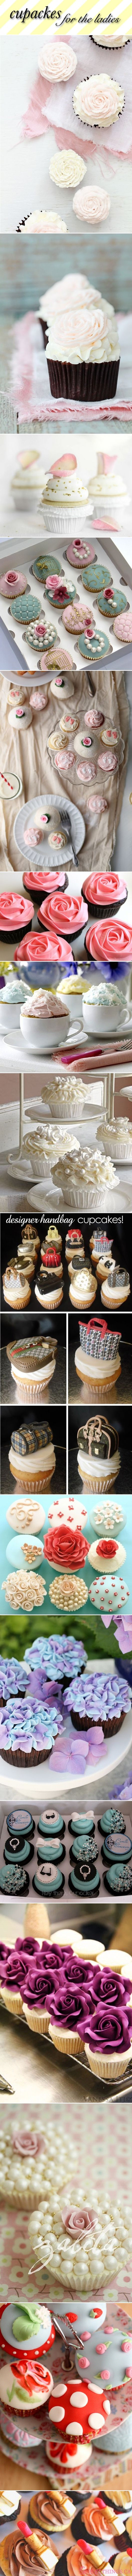 Love these cupcakes!!